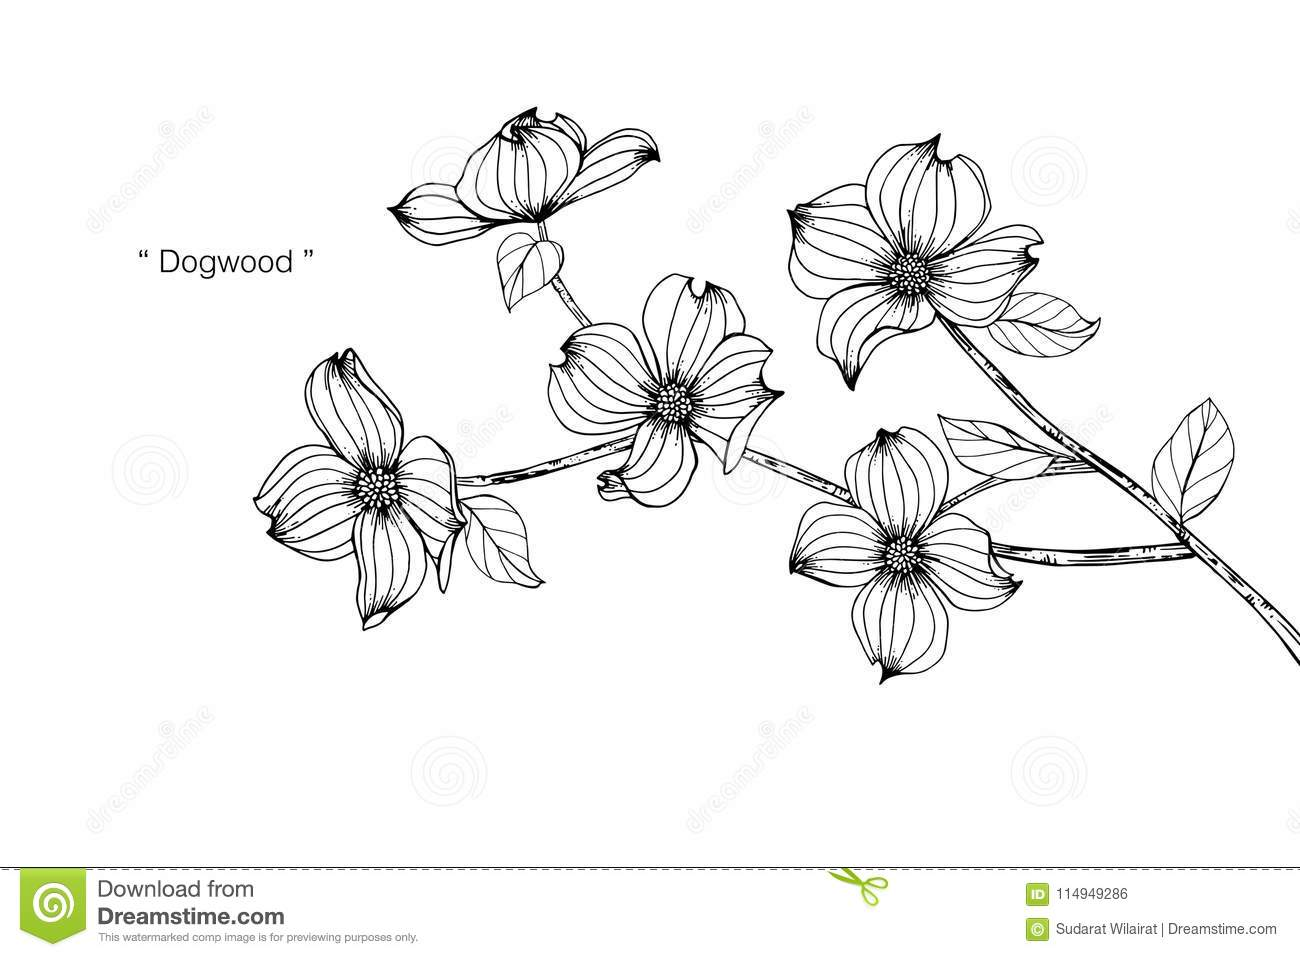 Dogwood Flower Drawing Illustration Black And White With